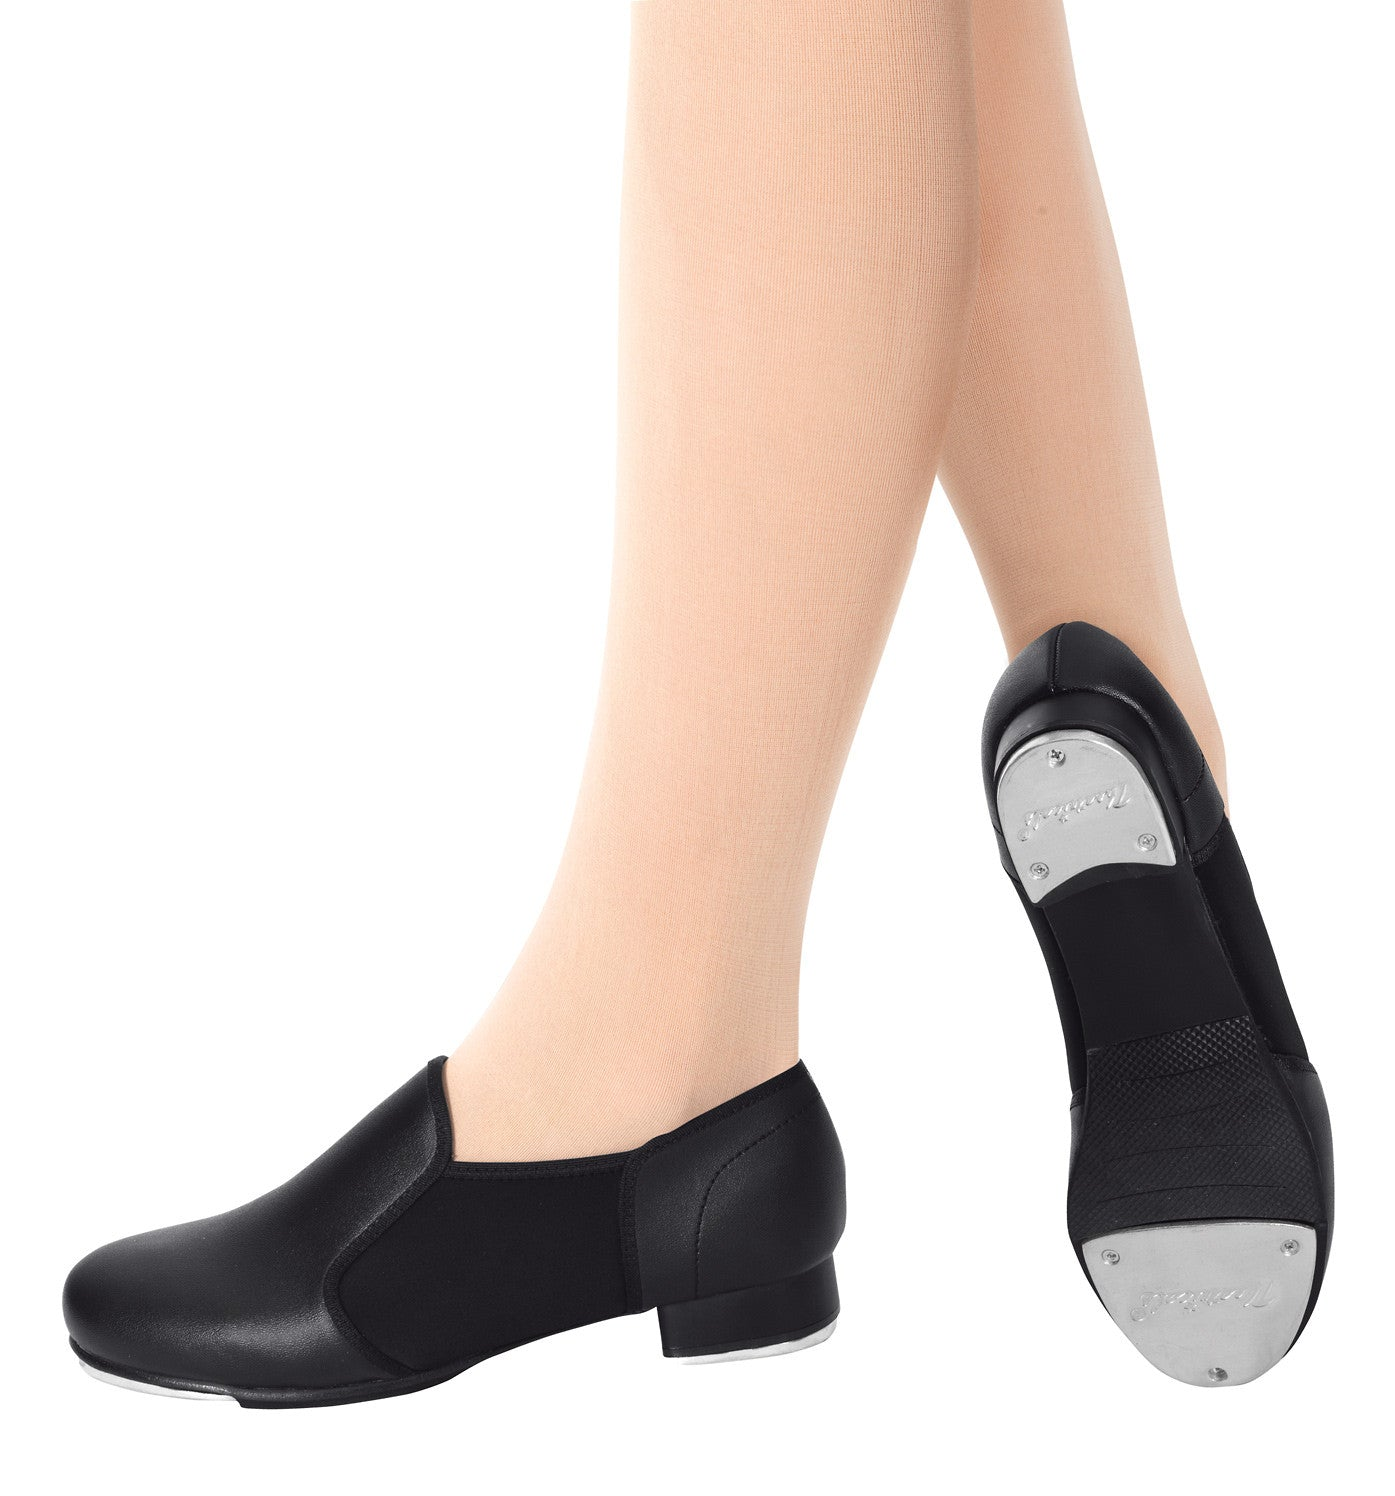 Neoprene Insert Tap Shoes for Girls